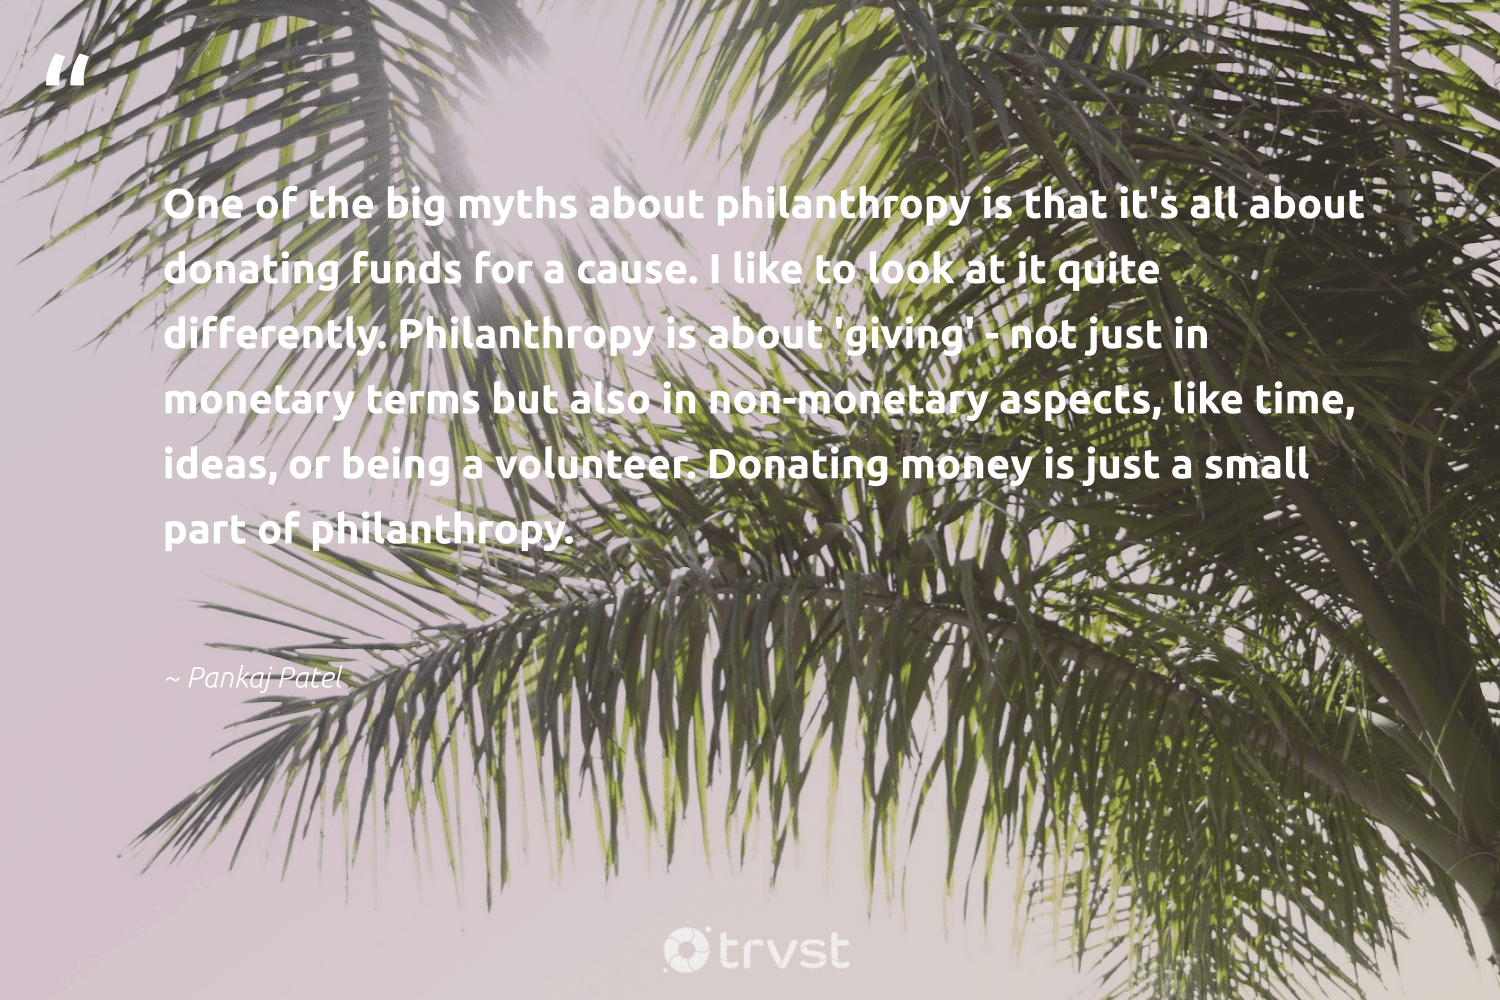 """""""One of the big myths about philanthropy is that it's all about donating funds for a cause. I like to look at it quite differently. Philanthropy is about 'giving' - not just in monetary terms but also in non-monetary aspects, like time, ideas, or being a volunteer. Donating money is just a small part of philanthropy.""""  - Pankaj Patel #trvst #quotes #volunteer #cause #philanthropy #NGO #itscooltobekind #betterplanet #changetheworld #fundraising #changemakers #giveback"""